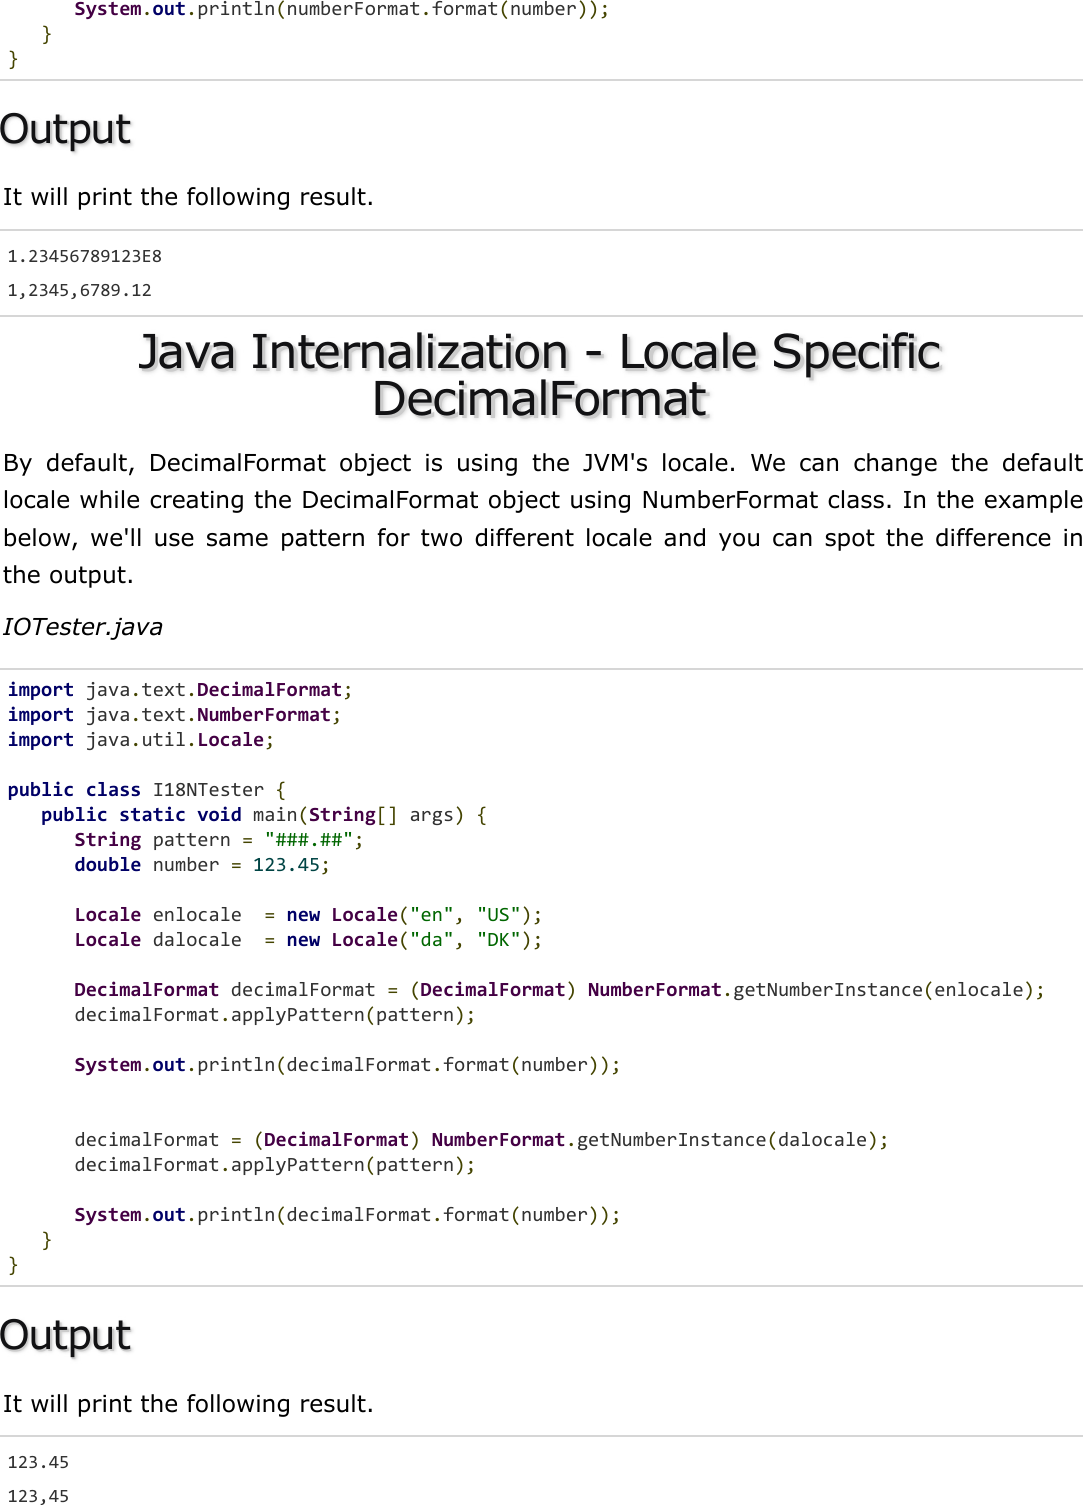 Java Internalization Quick Guide